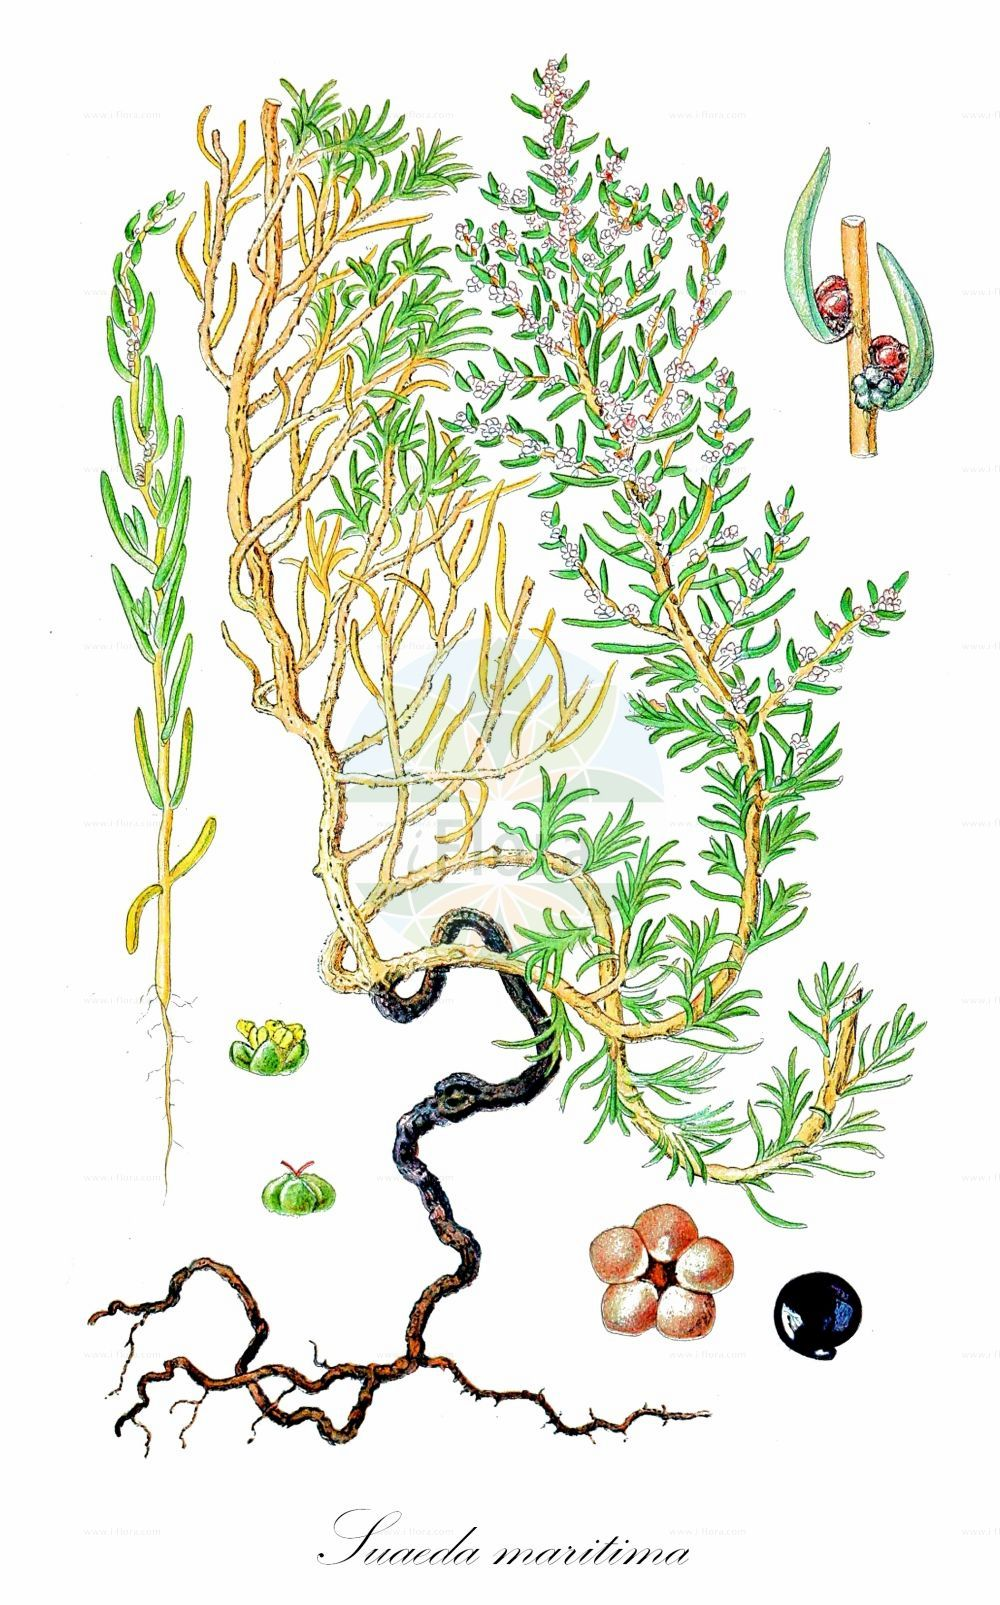 Historische Abbildung von Suaeda maritima (Strandsode - Annual Sea-blite). Das Bild zeigt Blatt, Bluete, Frucht und Same. ---- Historical Drawing of Suaeda maritima (Strandsode - Annual Sea-blite).The image is showing leaf, flower, fruit and seed.(Suaeda maritima,Strandsode,Annual Sea-blite,Chenopodium maritimum,Suaeda cavanillesiana,Suaeda jacquinii,,Chenopodium maritimum L.,Herbaceous Seepweed,Atlantic Sea-blite,Salt Goosefoot,Suaeda,Sode,Sea-blite,Amaranthaceae,Fuchsschwanzgewaechse,Pigweed family,Blatt,Bluete,Frucht,Same,leaf,flower,fruit,seed,Lindman (1901-1905))